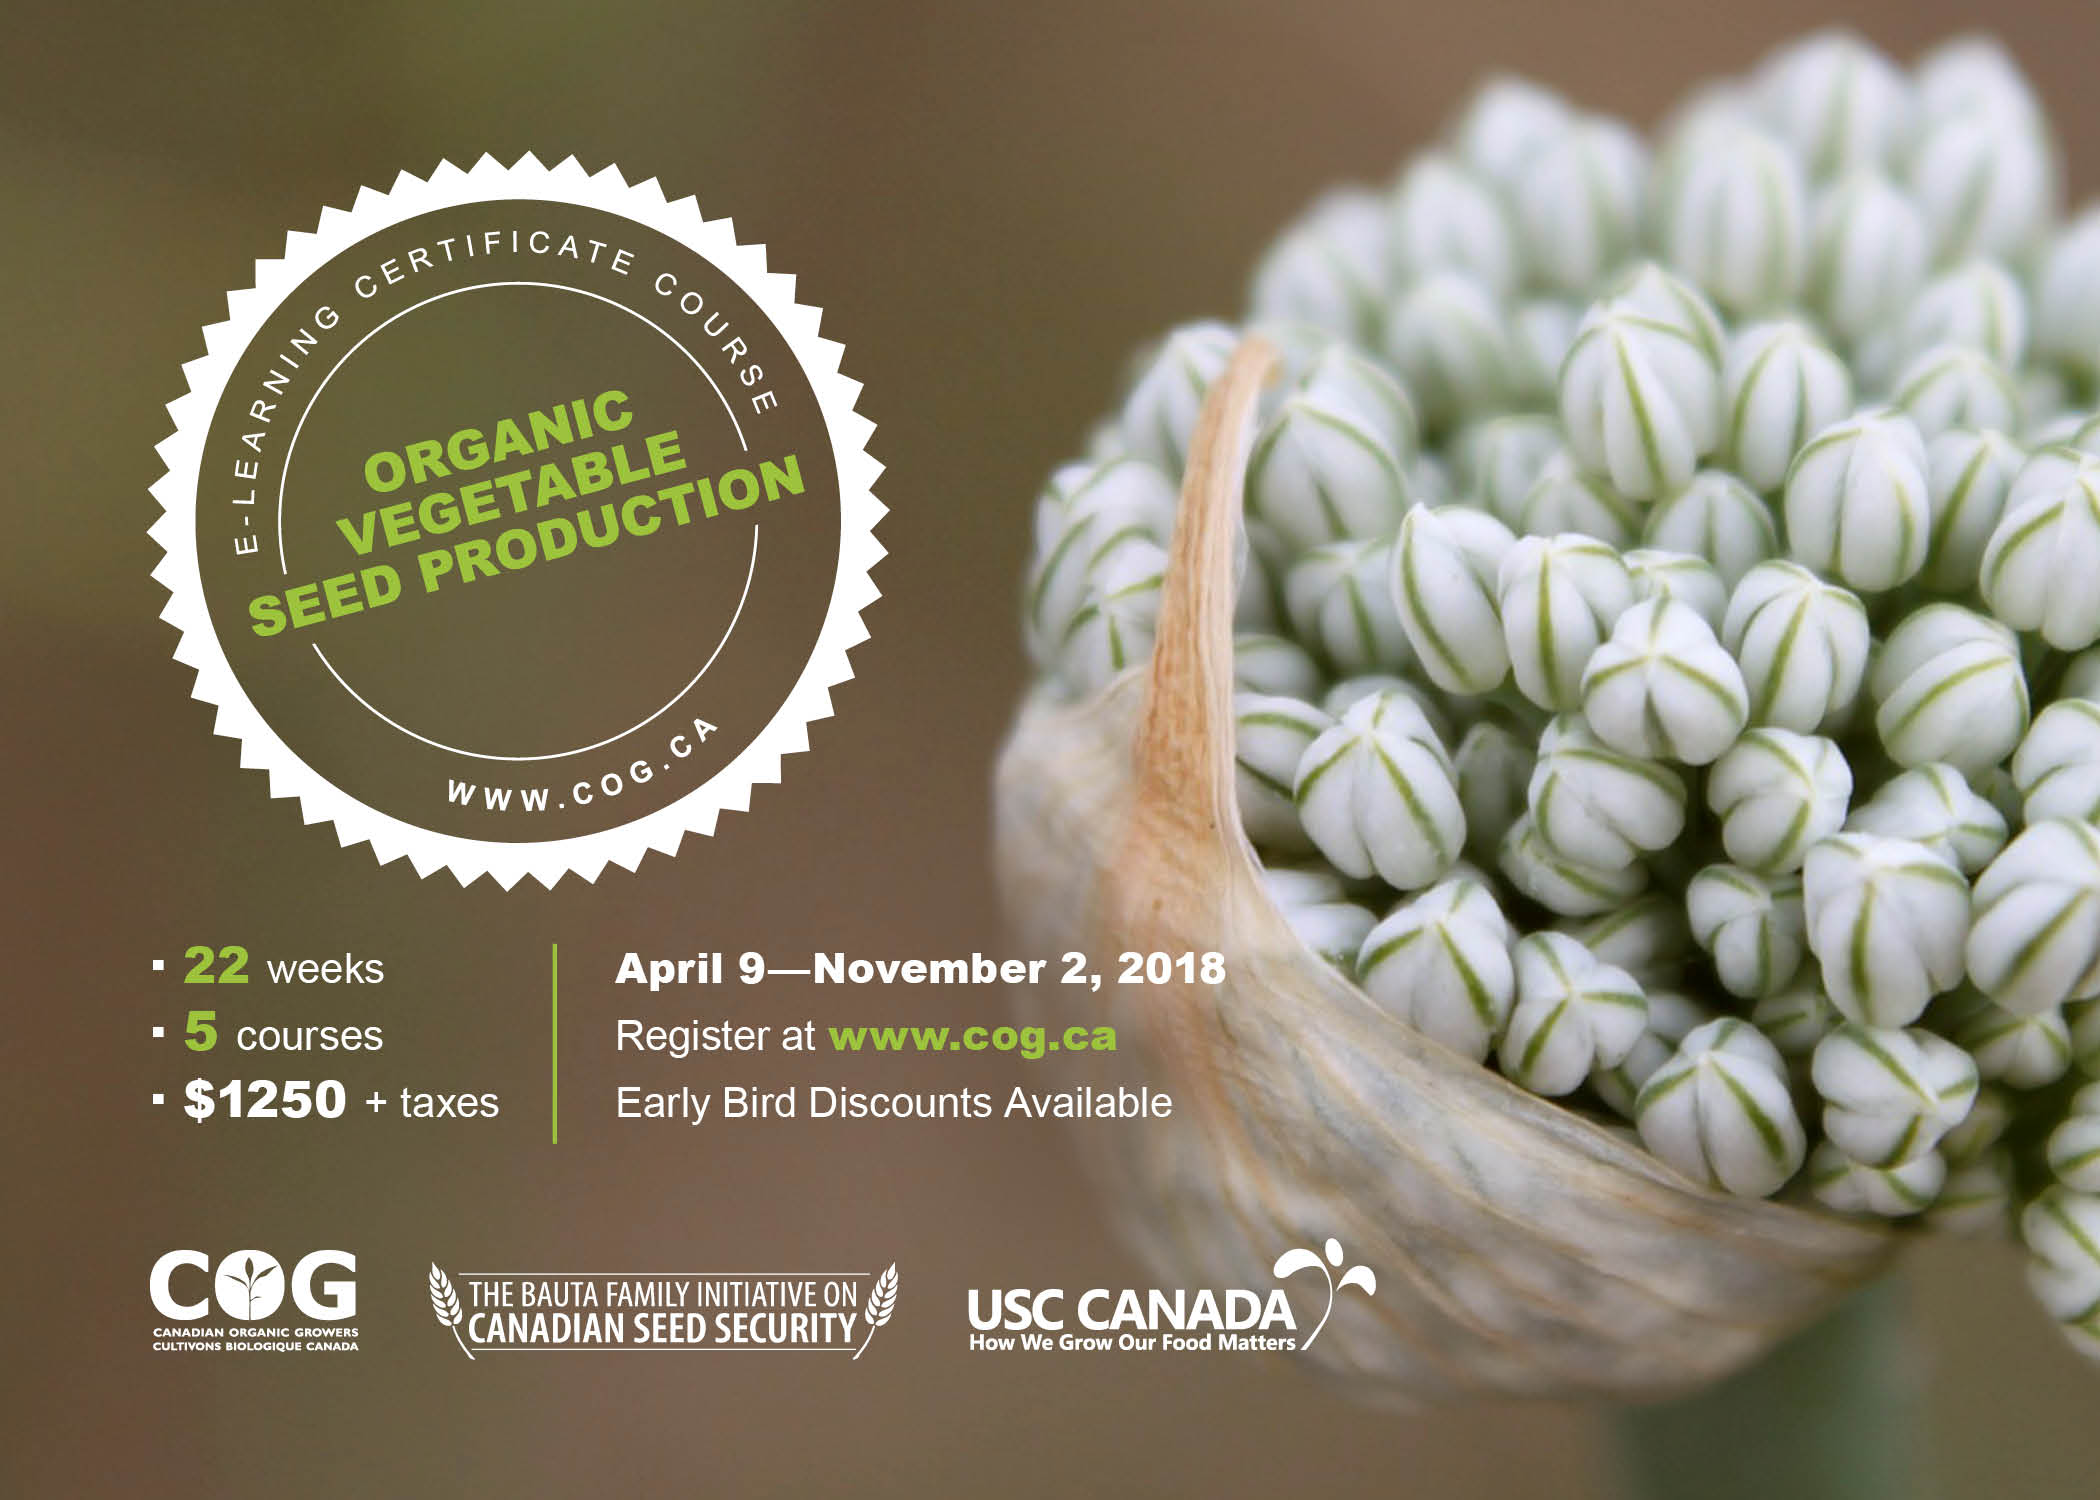 February 2018 for the second year canadian organic growers is excited to open registration for canadas only intermediate level organic vegetable seed production izmirmasajfo